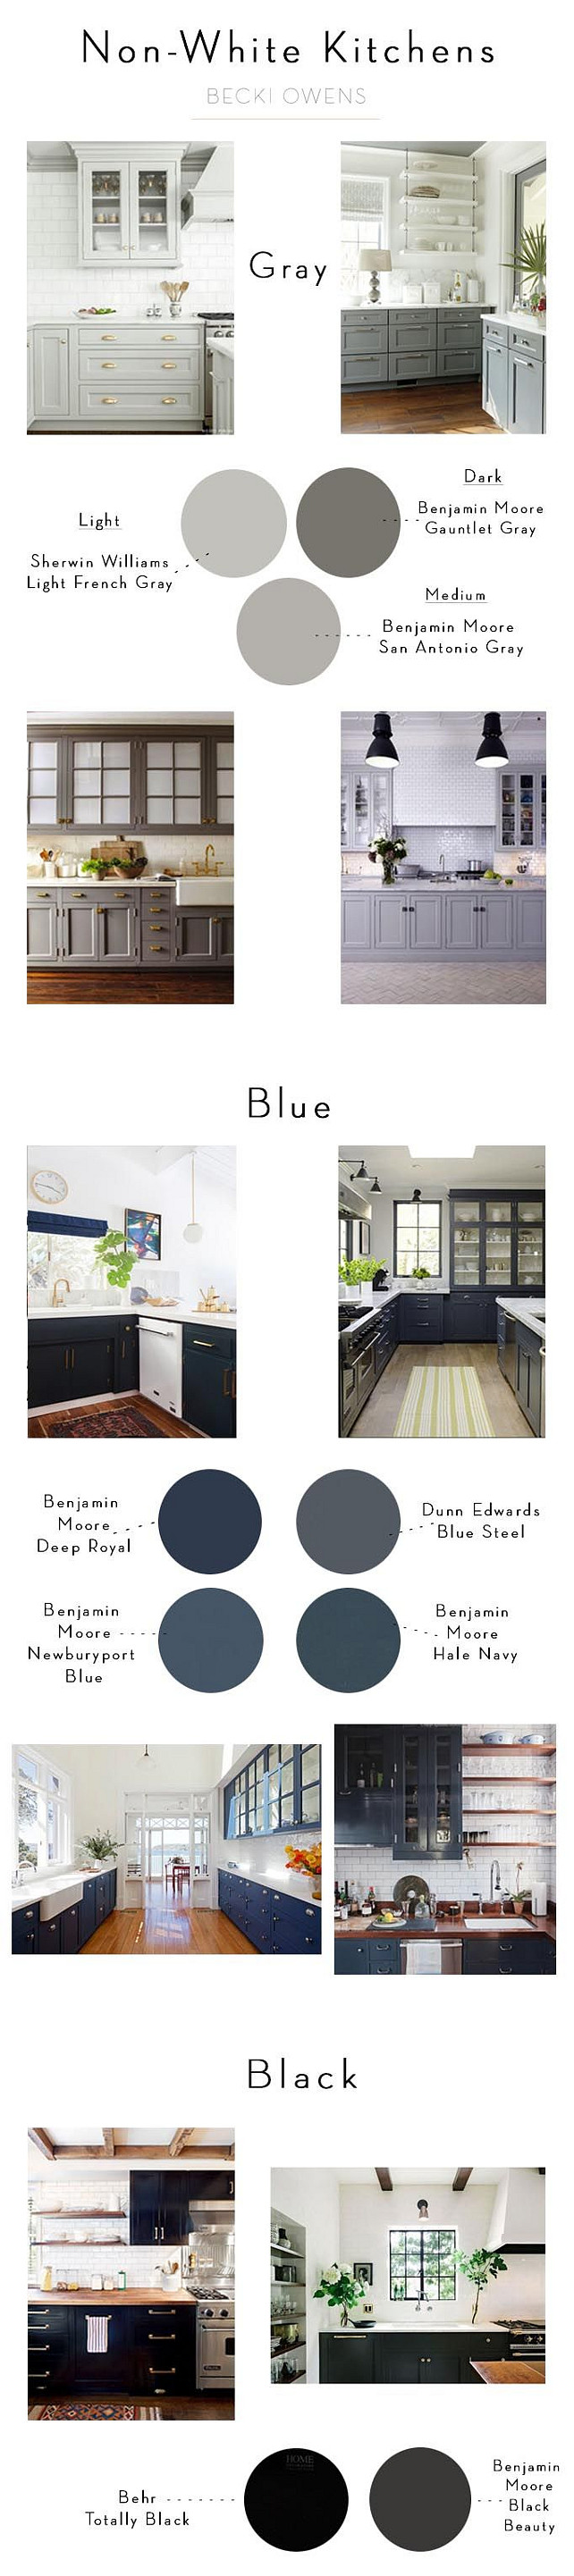 Non-White Kitchen Paint Color. Non-White Kitchen Paint Color Suggestions. Non-White Kitchen Paint Color Ideas. #NonWhiteKitchenPaintColor Gray Kitchen Paint Color: Light Gray Paint Color: Light French Gray by Sherwing Williams. Medium Gray Paint Color: San Antonio Gray by Benjamin Moore. Dark Gray Paint Color: Gauntlet Gray by Benjamin Moore. Navy Kitchen Paint Color: Deep Royal by Benjamin Moore. Newburyport Blue by Benjamin Moore. Hale Navy by Benjamin Moore. Blue Steel Dunn Edwards. Black Kitchen Paint Color: Totally Black by Behr. Black Beauty by Benjamin Moore. Becki Owens.